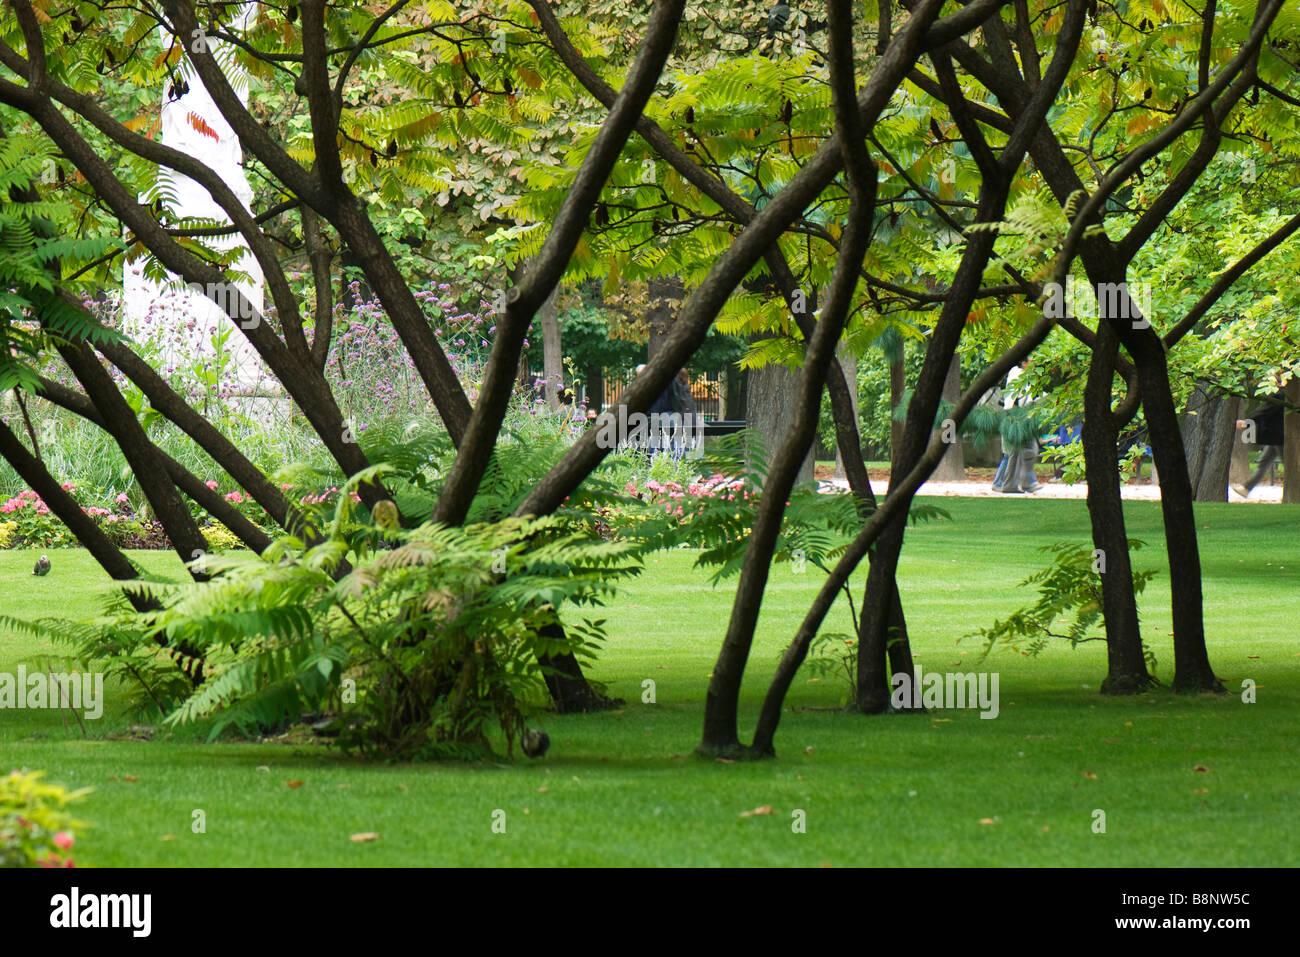 France, Paris, tree grove in Jardin du Luxembourg - Stock Image